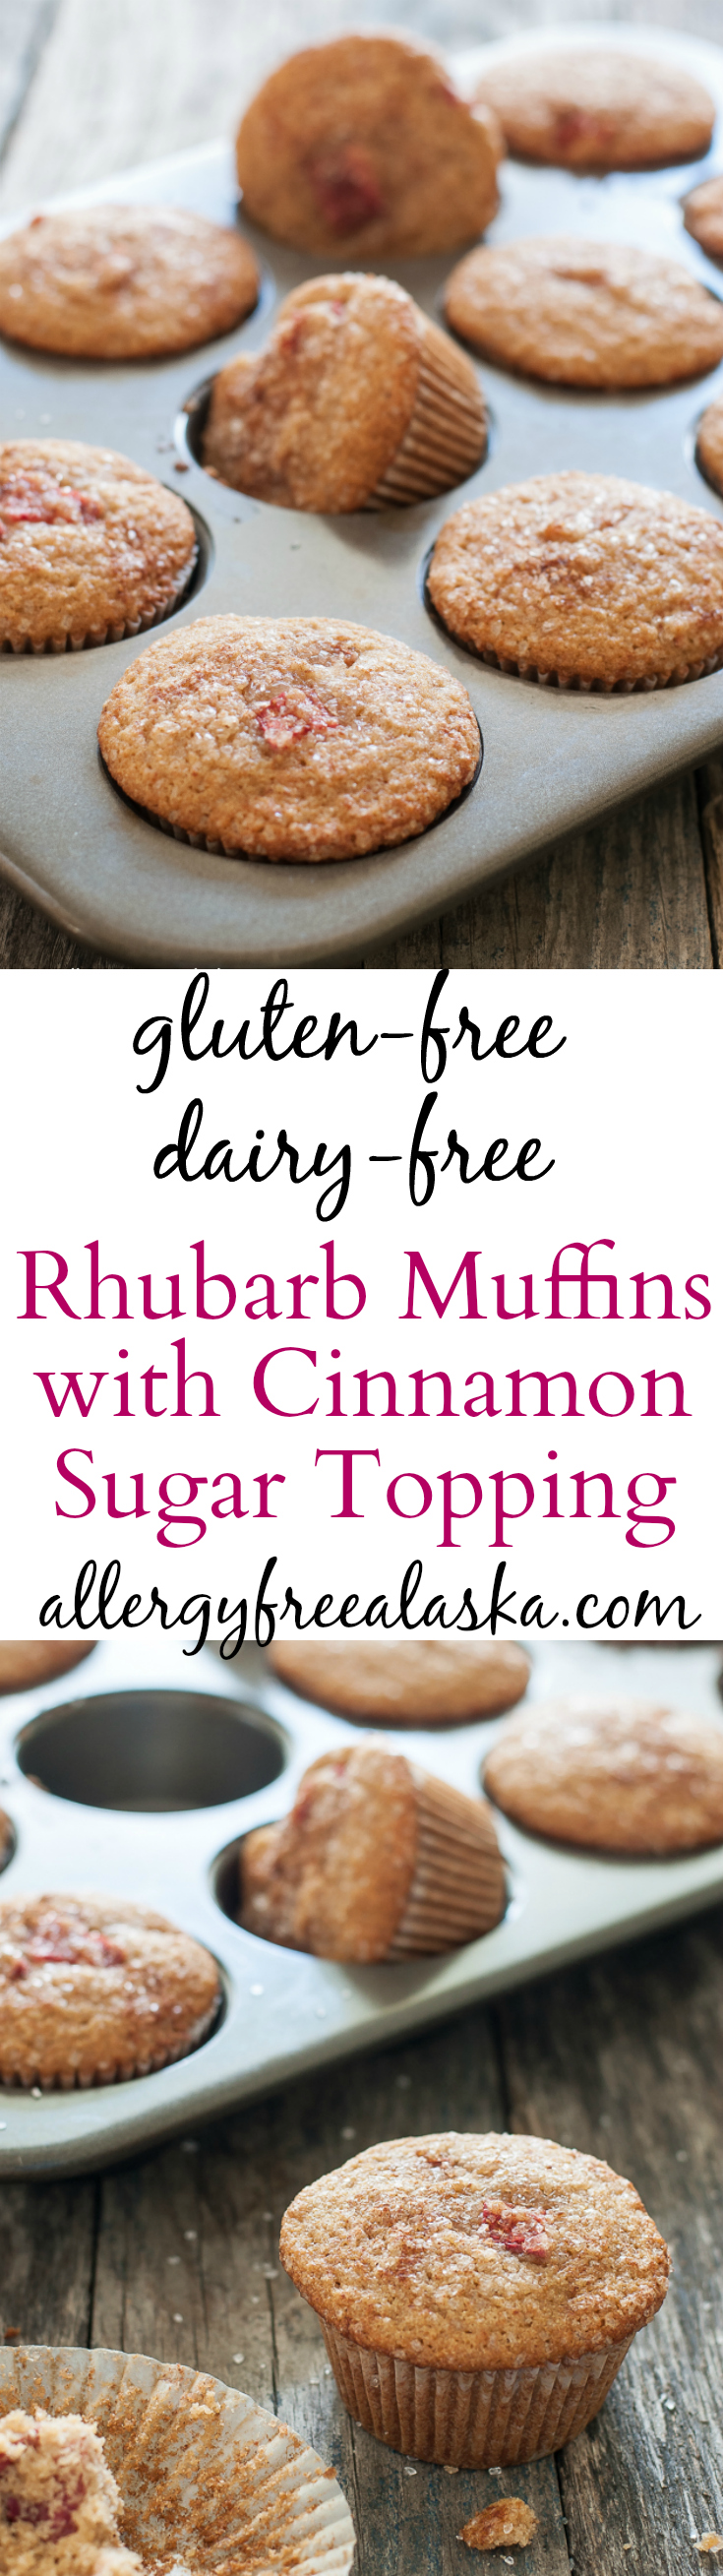 Gluten-Free Dairy-Free Rhubarb Muffins with a crunchy Cinnamon Sugar Topping.